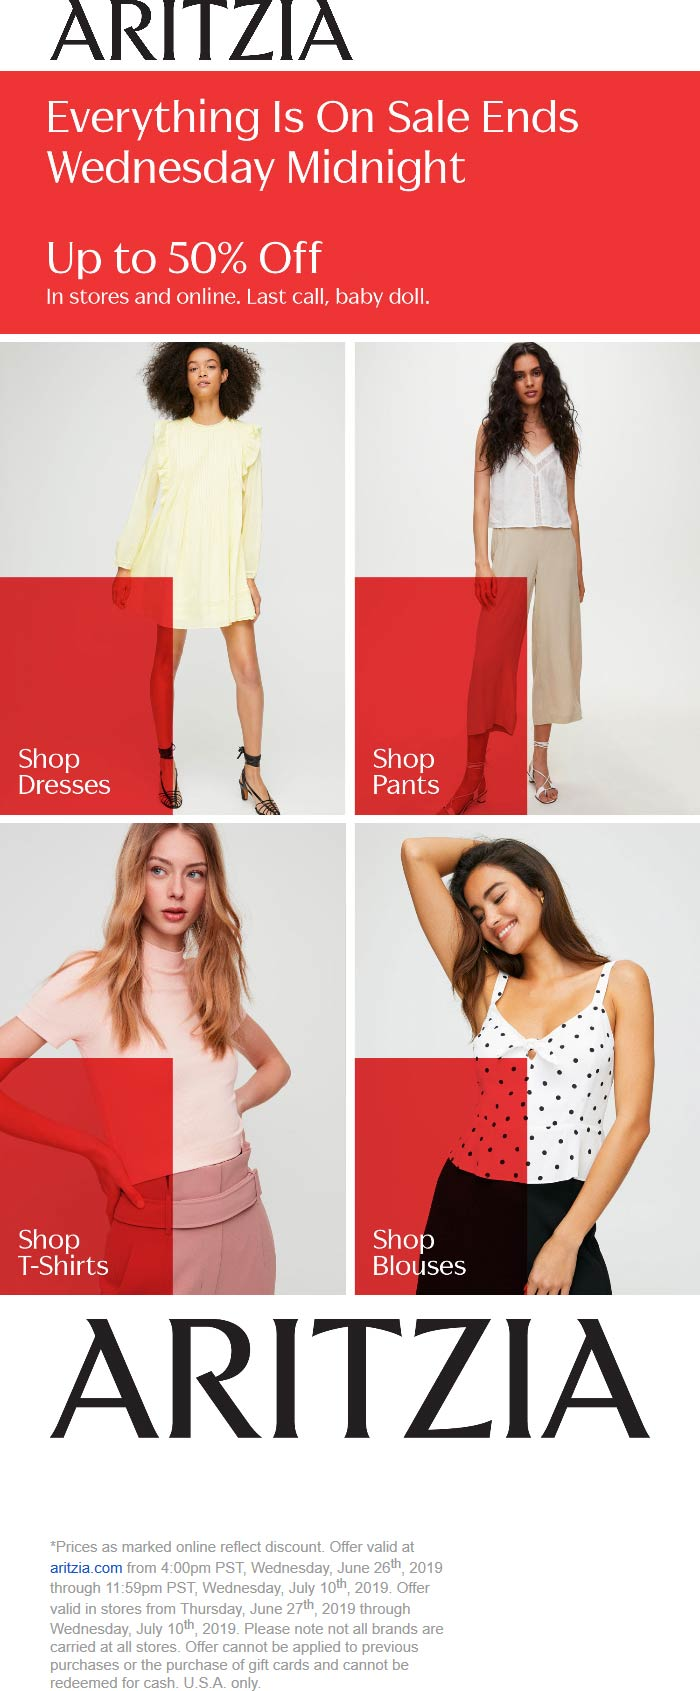 Aritzia Coupon July 2019 50% off sale going on at Aritzia, ditto online